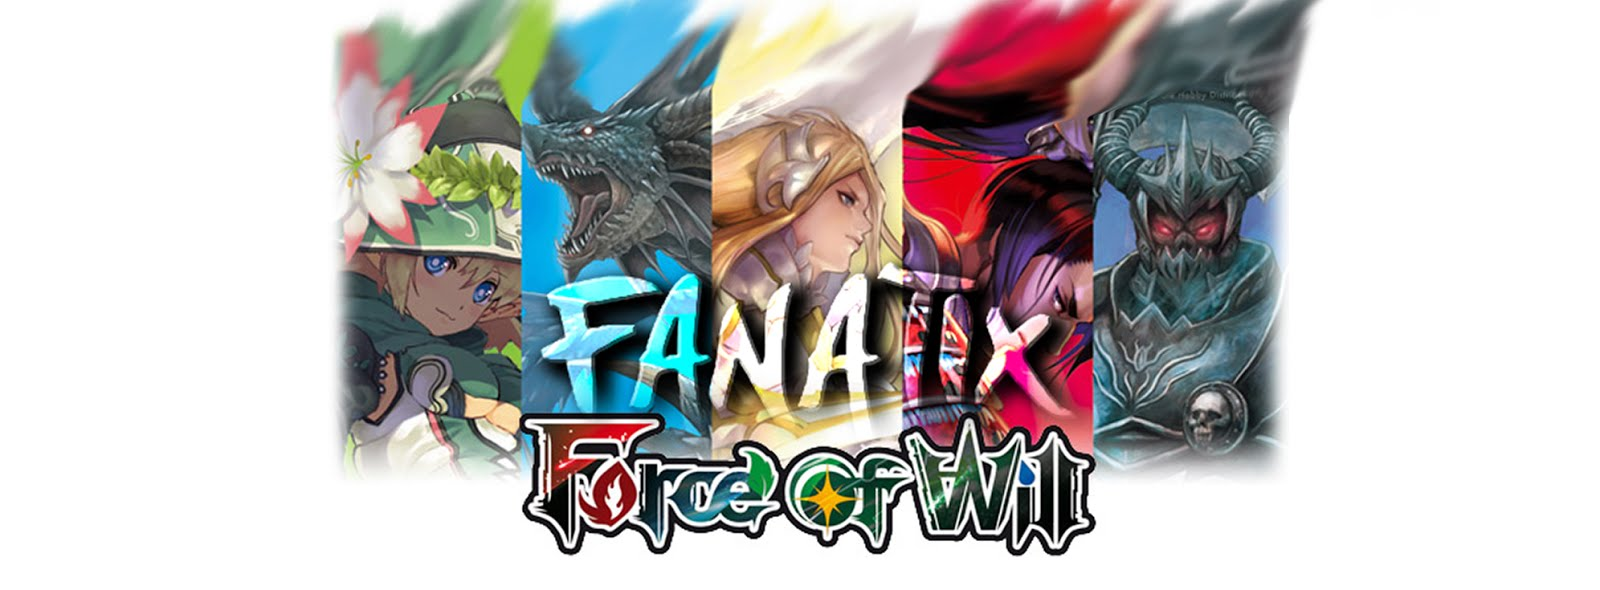 Fanatix FoW, Deck Teks, Articles and More